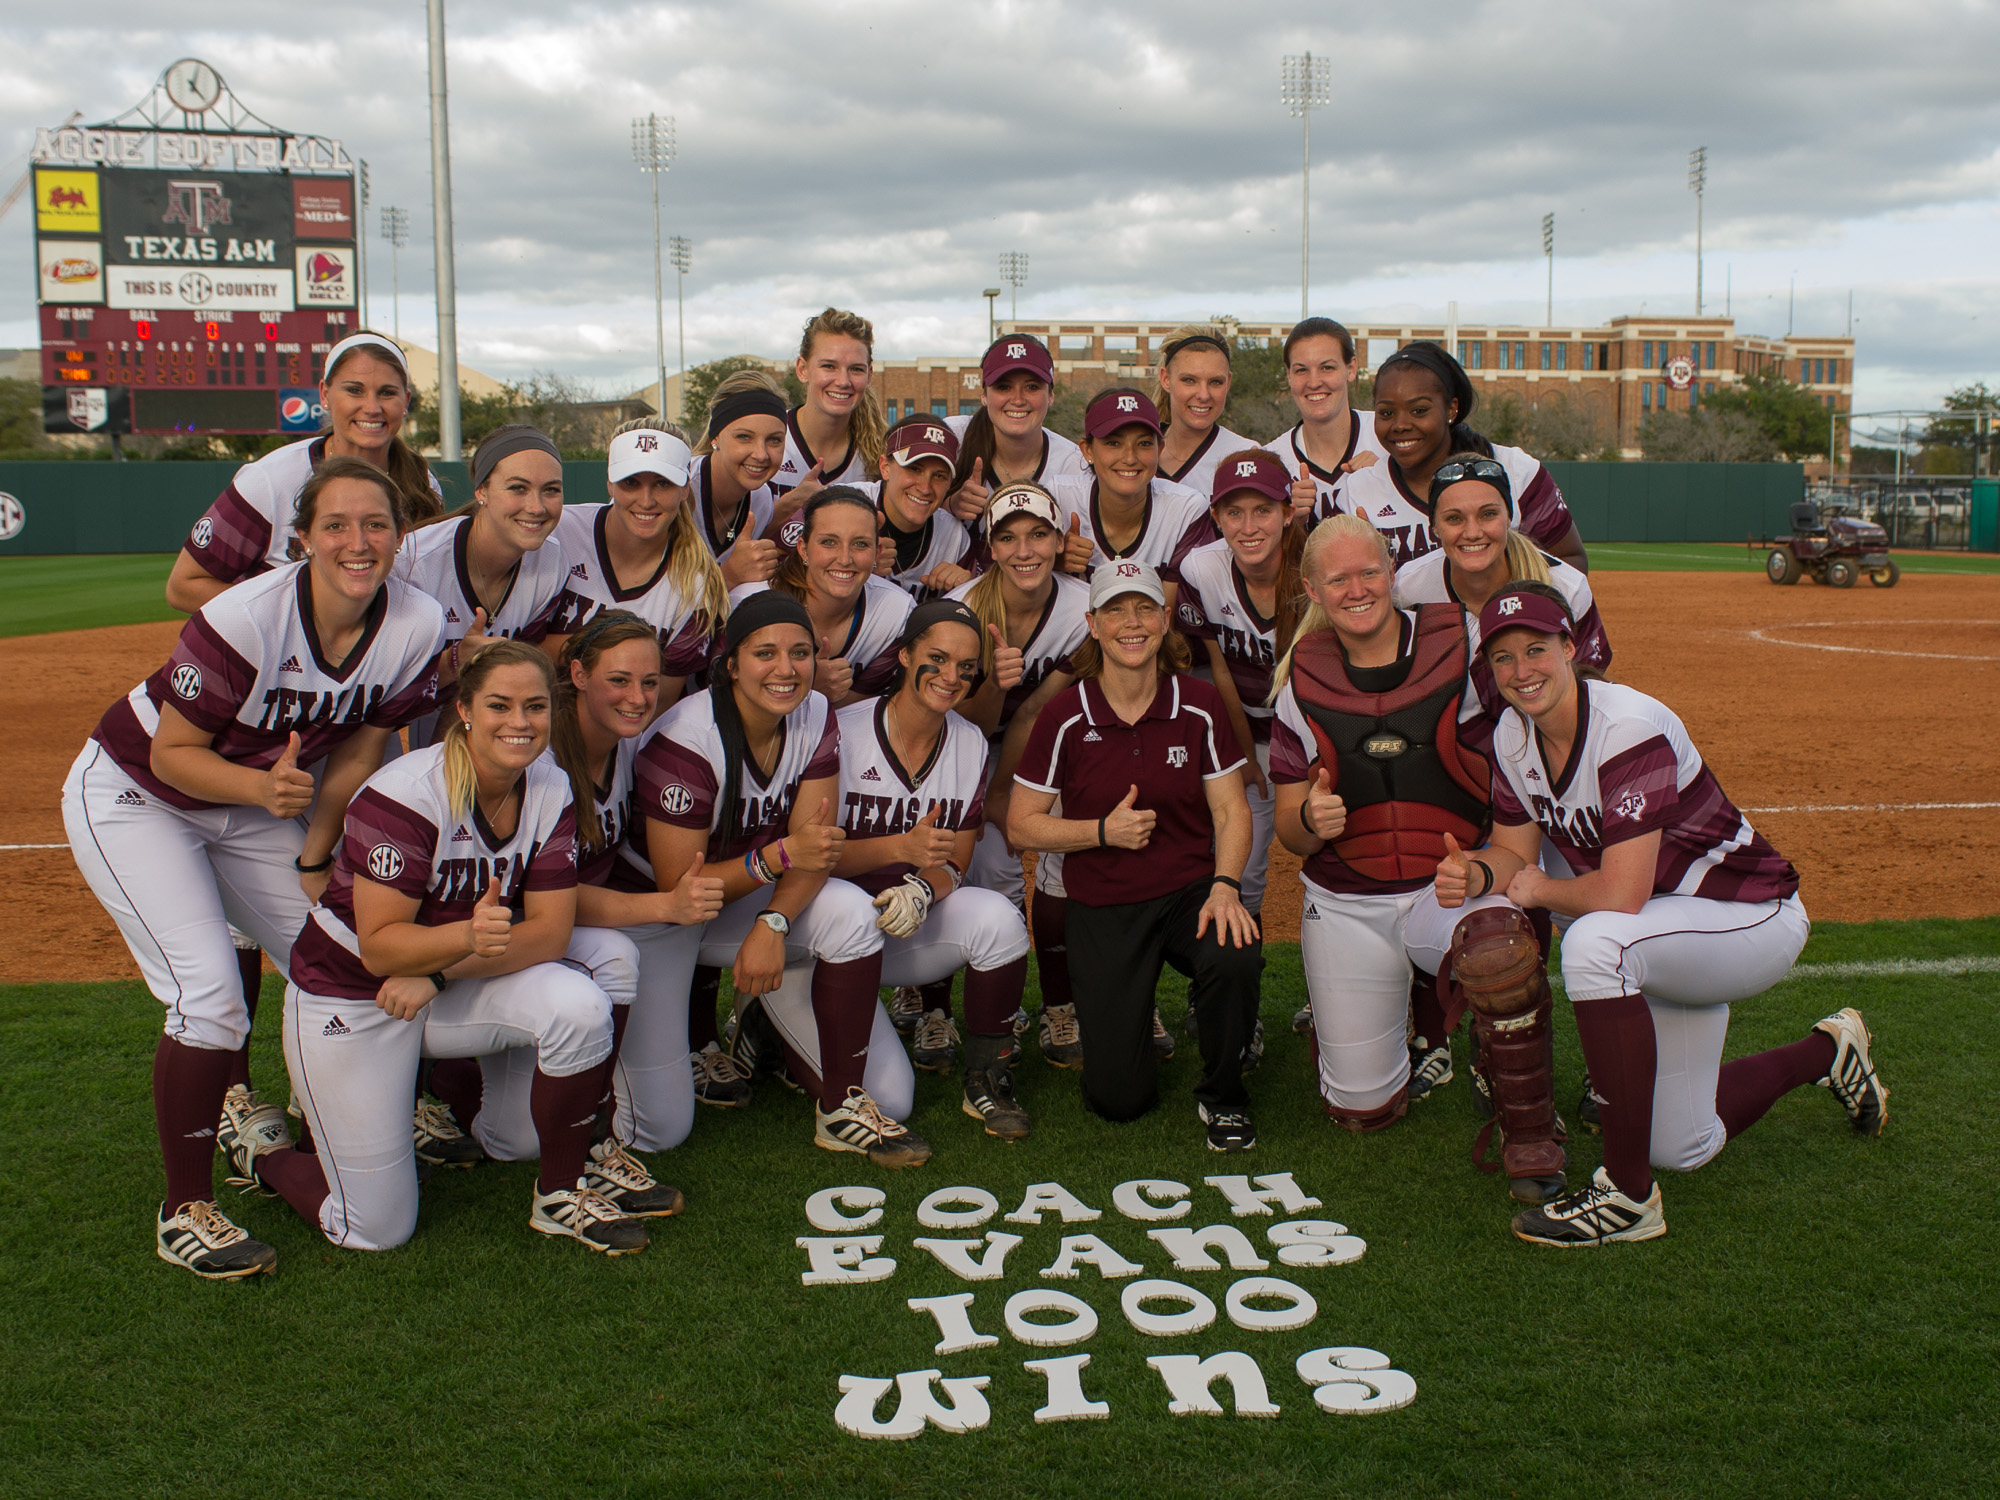 Coach Jo Evans 1000 wins Texas A&M Softball